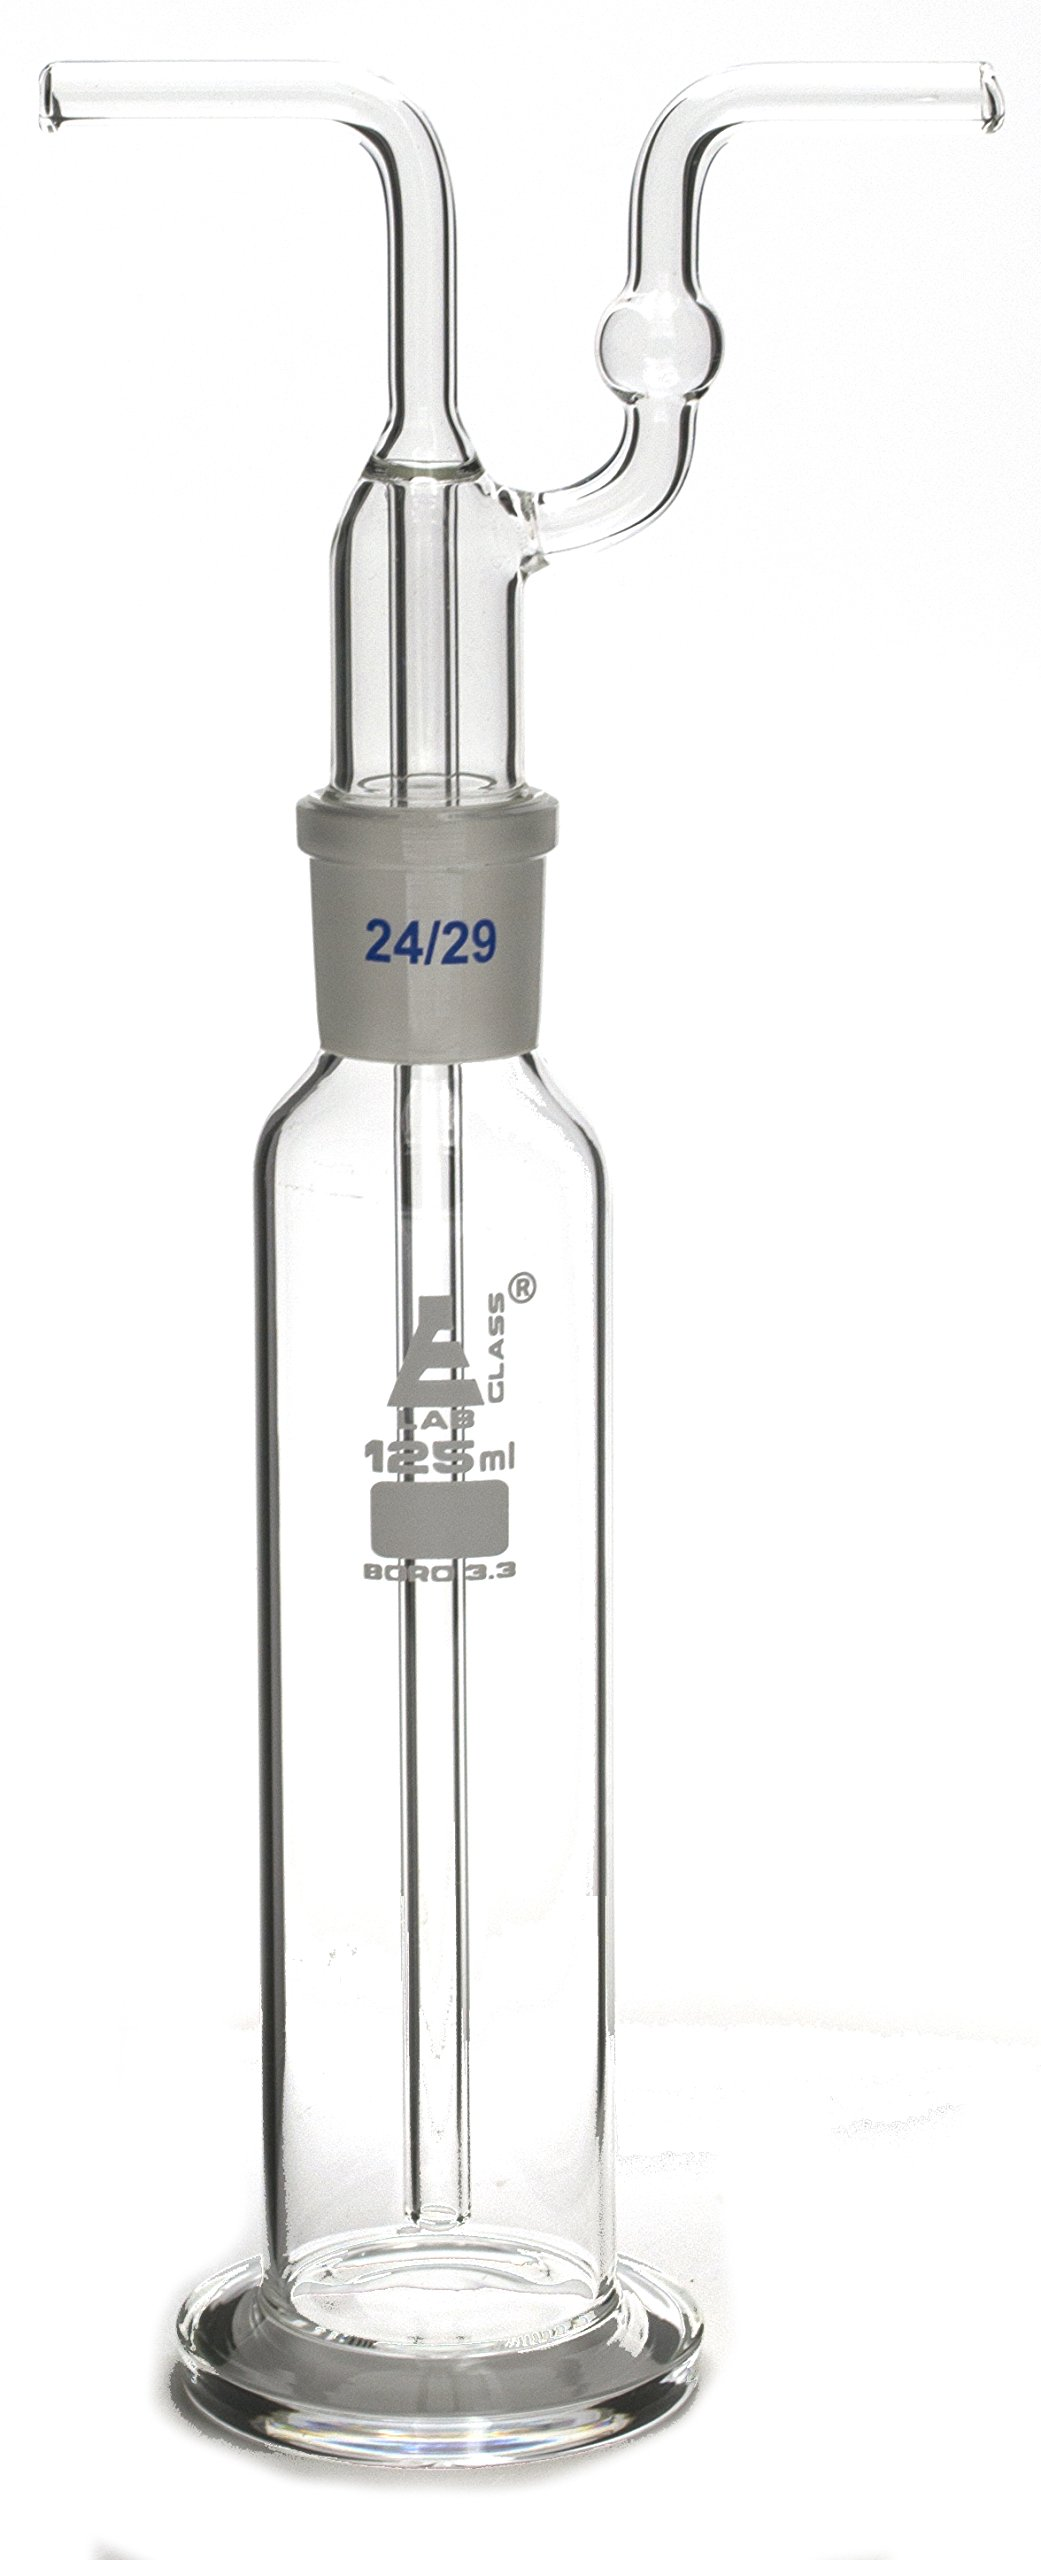 125mL Drecshel's Bottle for Gas Washing, Interchangeable Joint Head 24/29, Borosilicate 3.3 Glass - Eisco Labs by EISCO